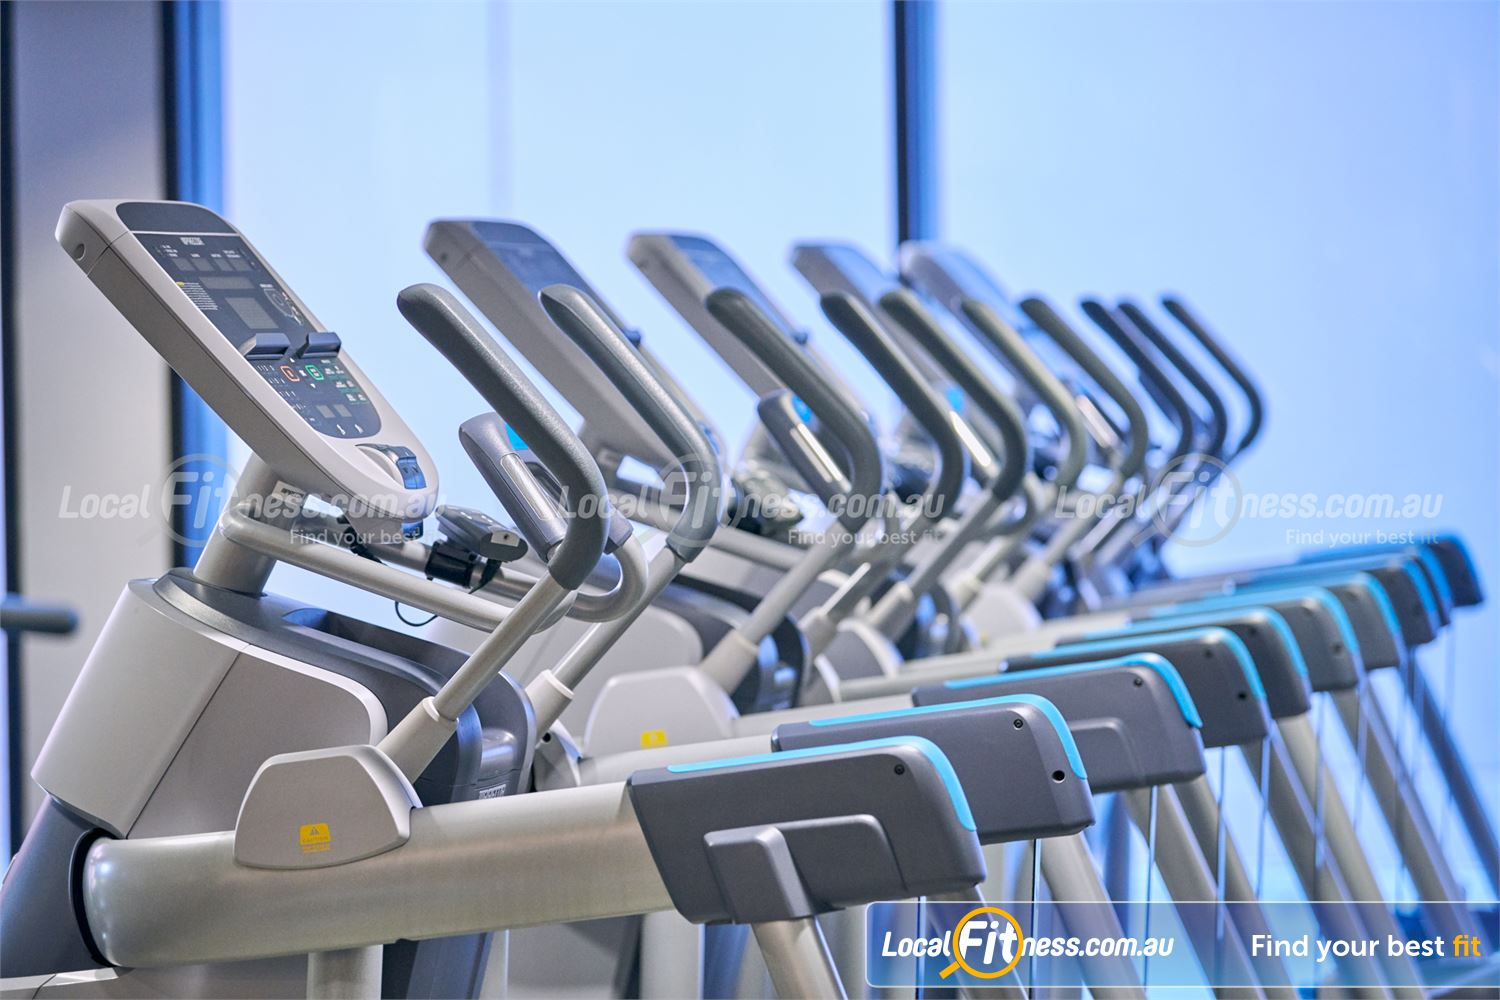 Fitness First Erina Fair Erina Rows and rows of cardio machines so you don't have to wait.